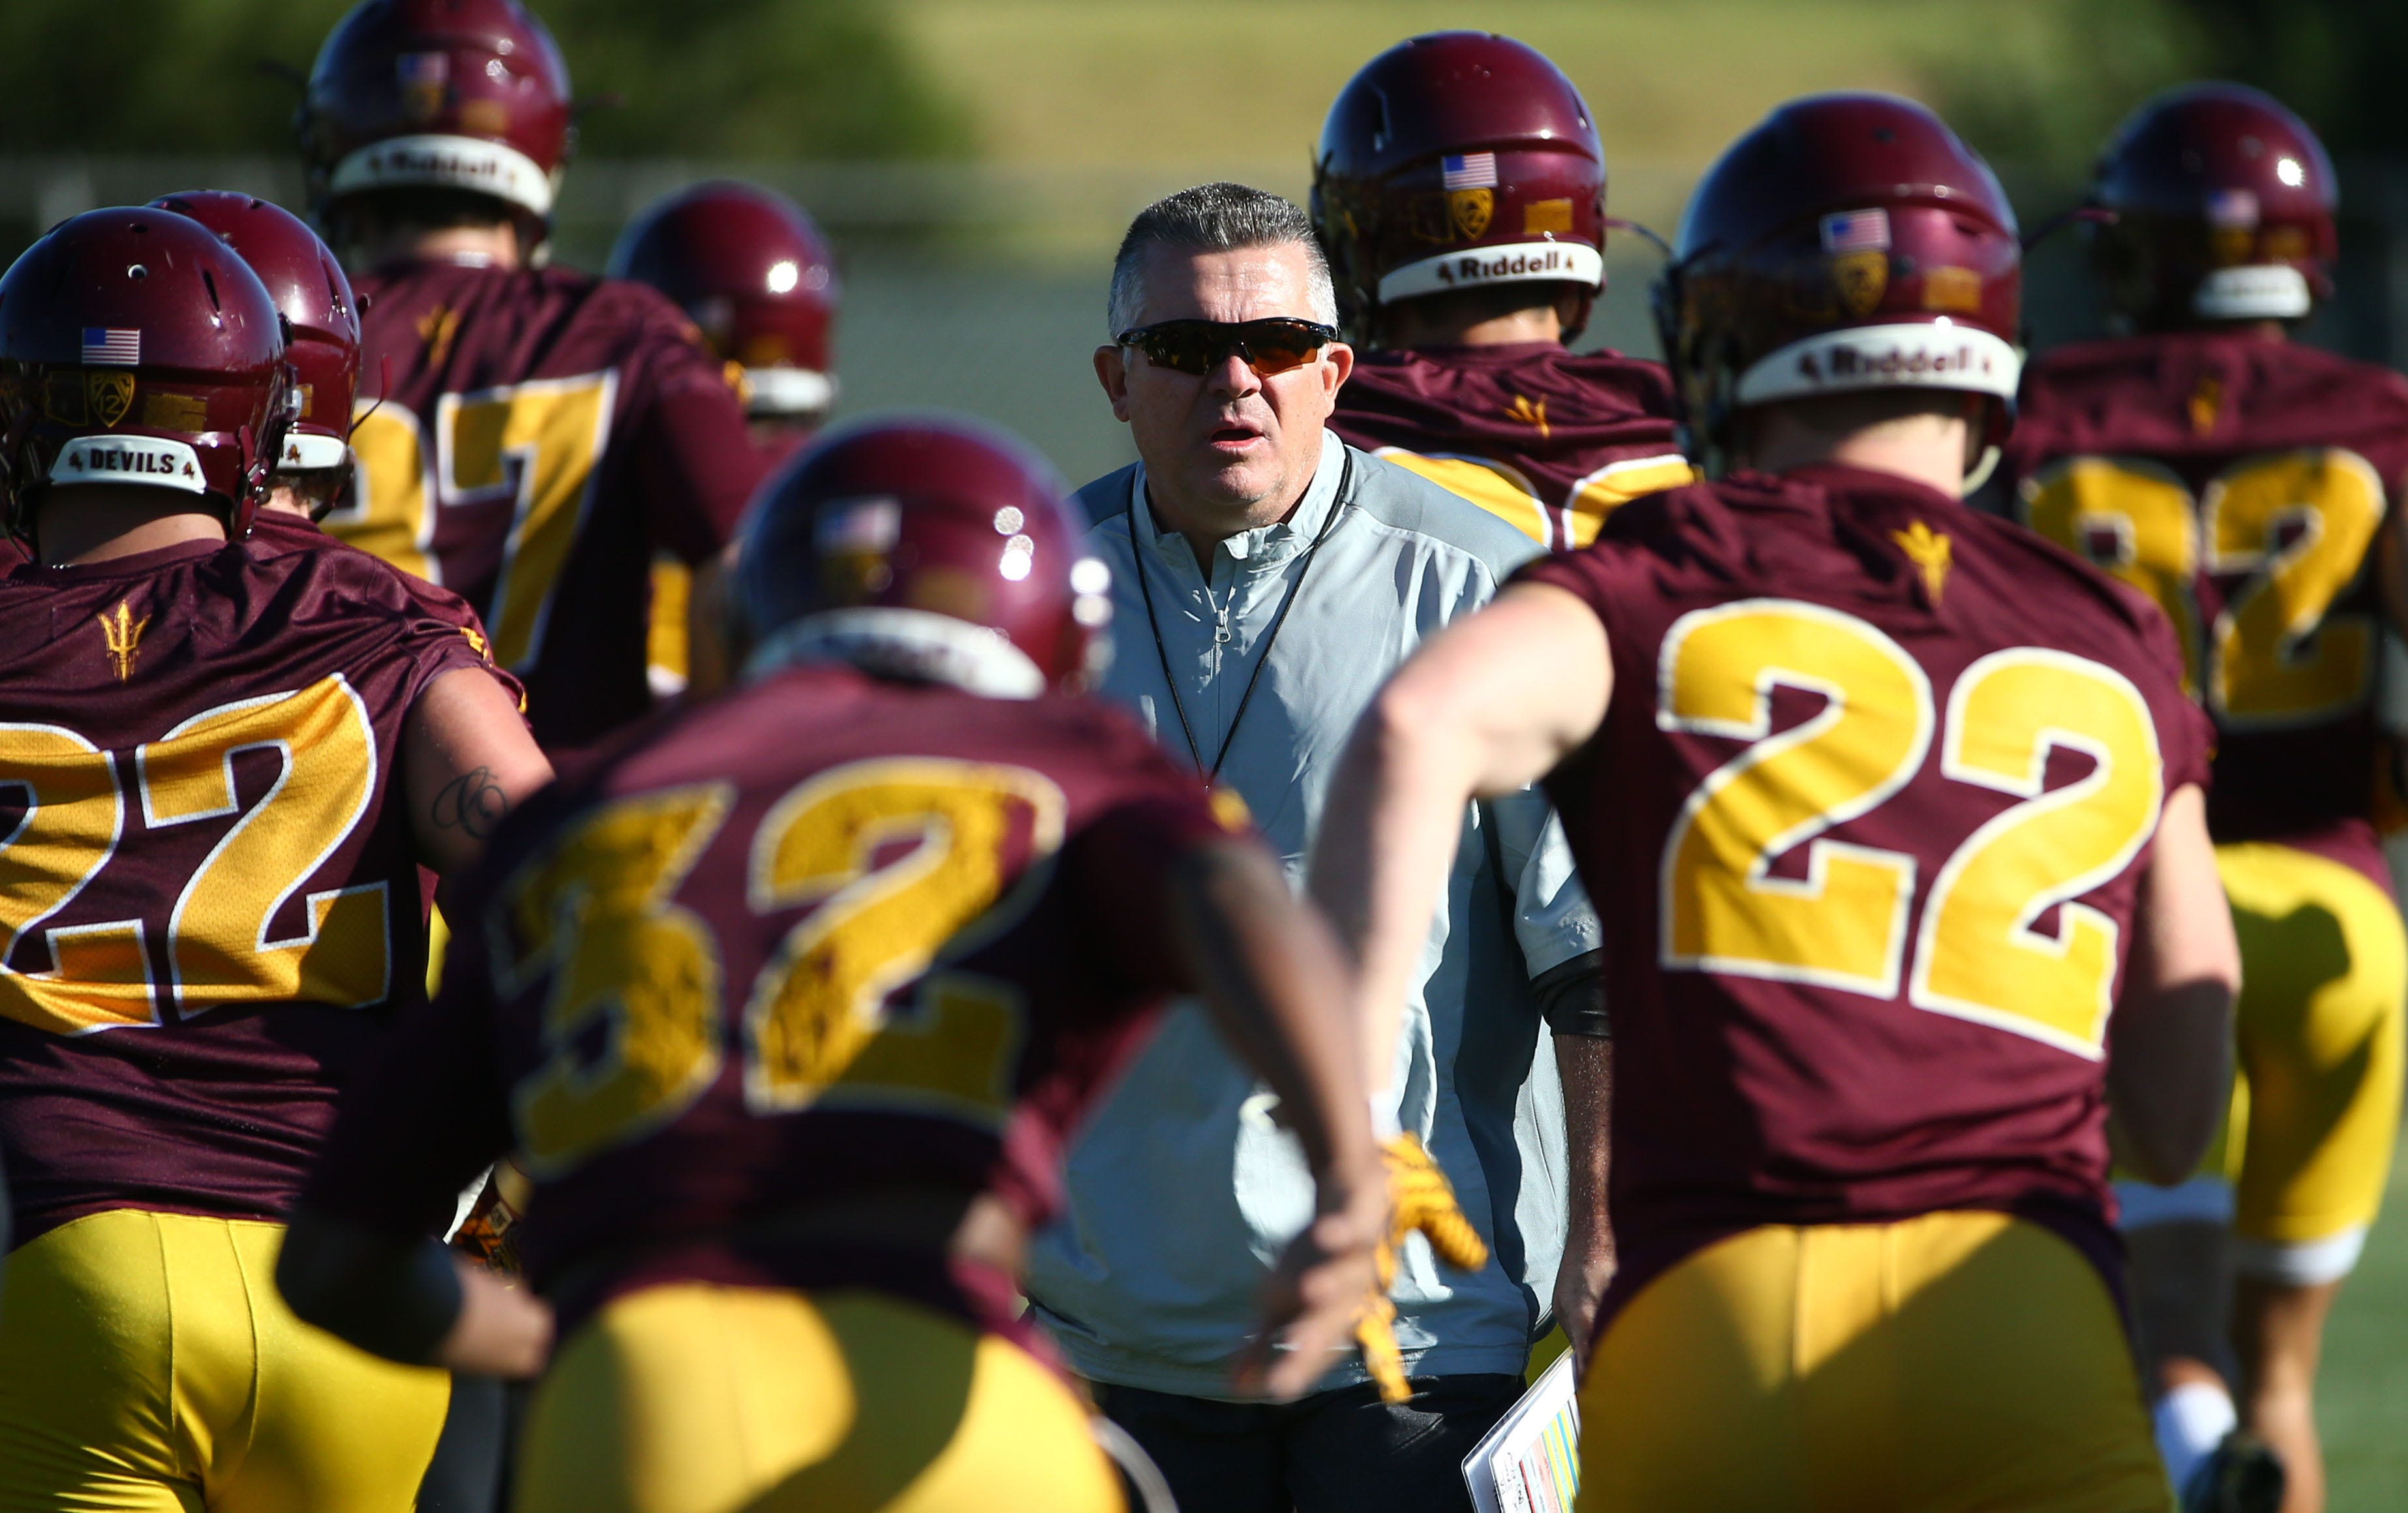 ASU football: Timeline of offseason personnel changes